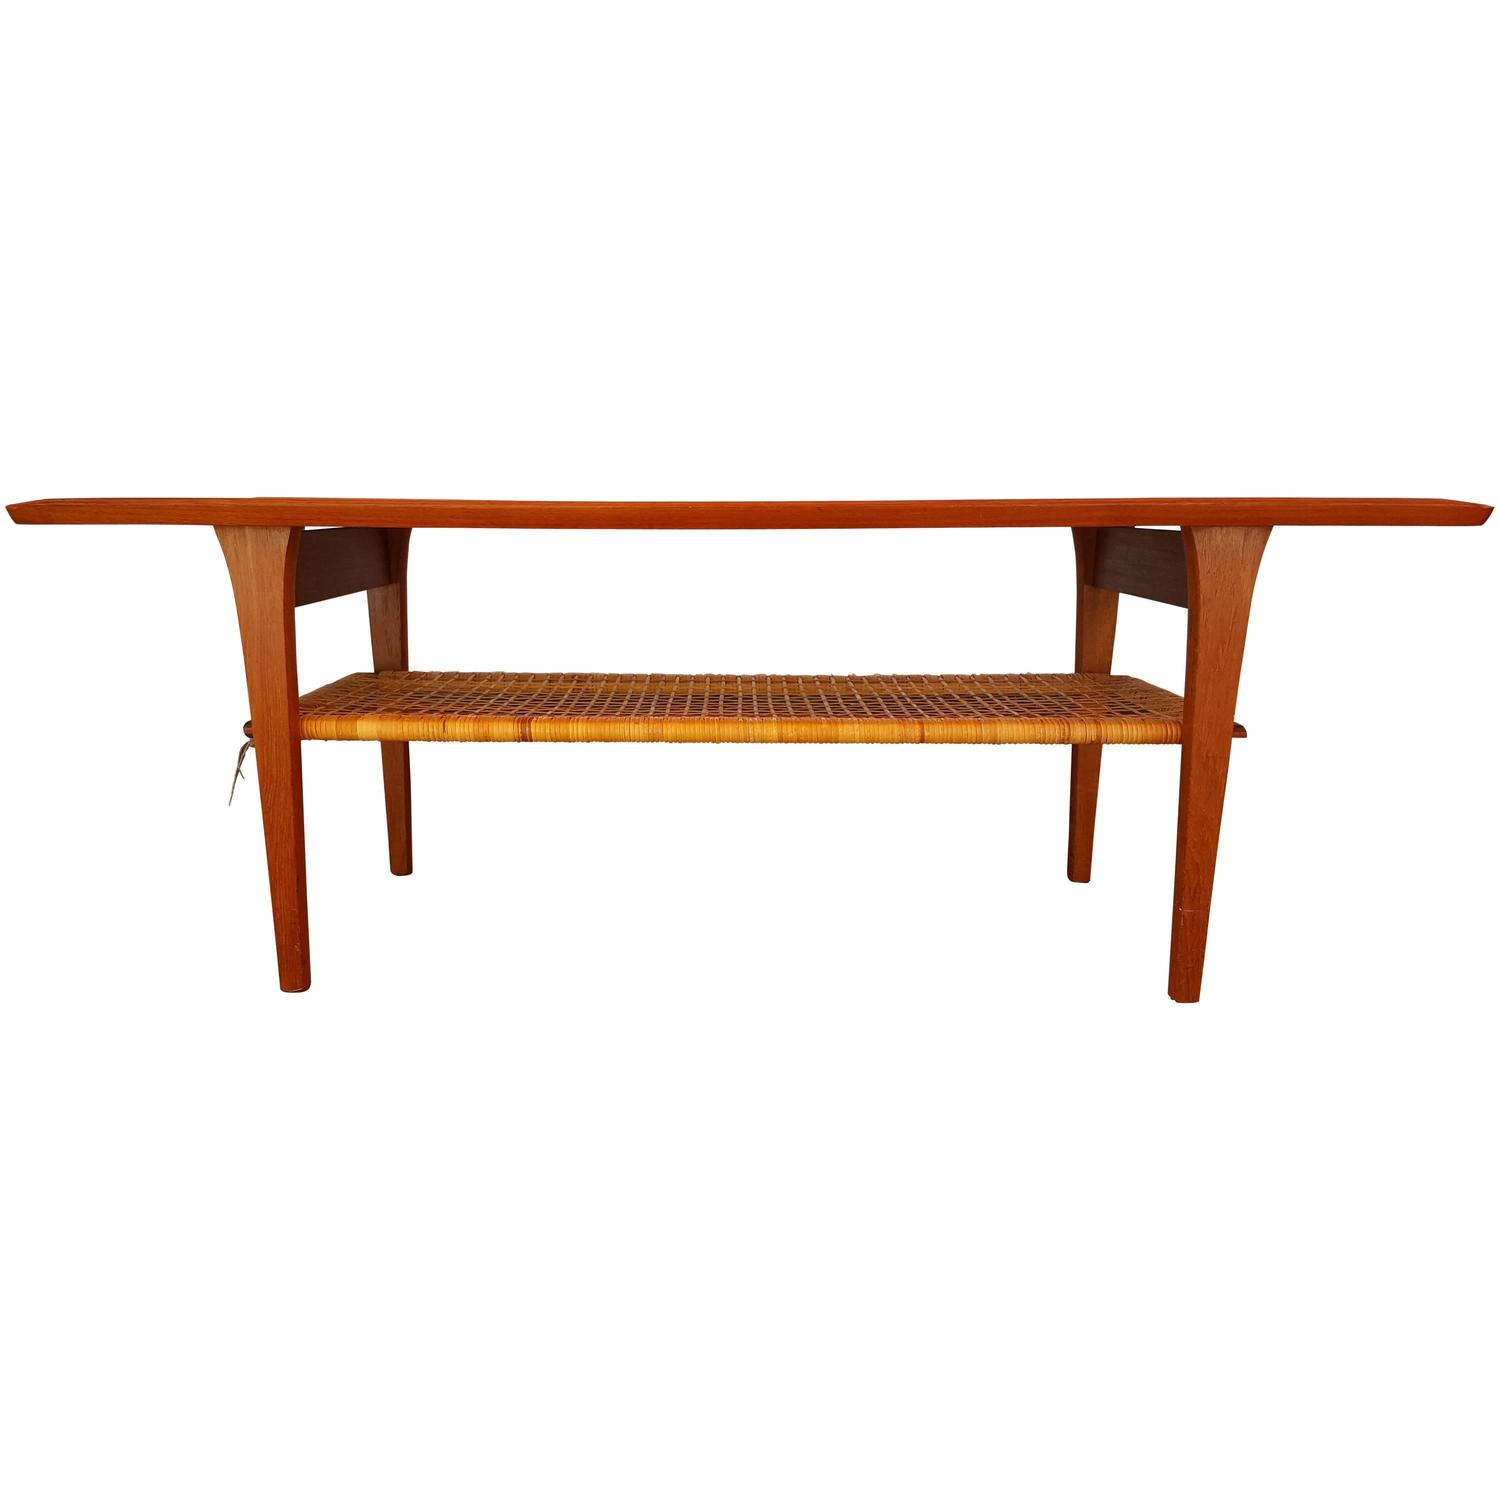 Classic teak danish modern coffee table at 1stdibs for Furniture classics ltd coffee table